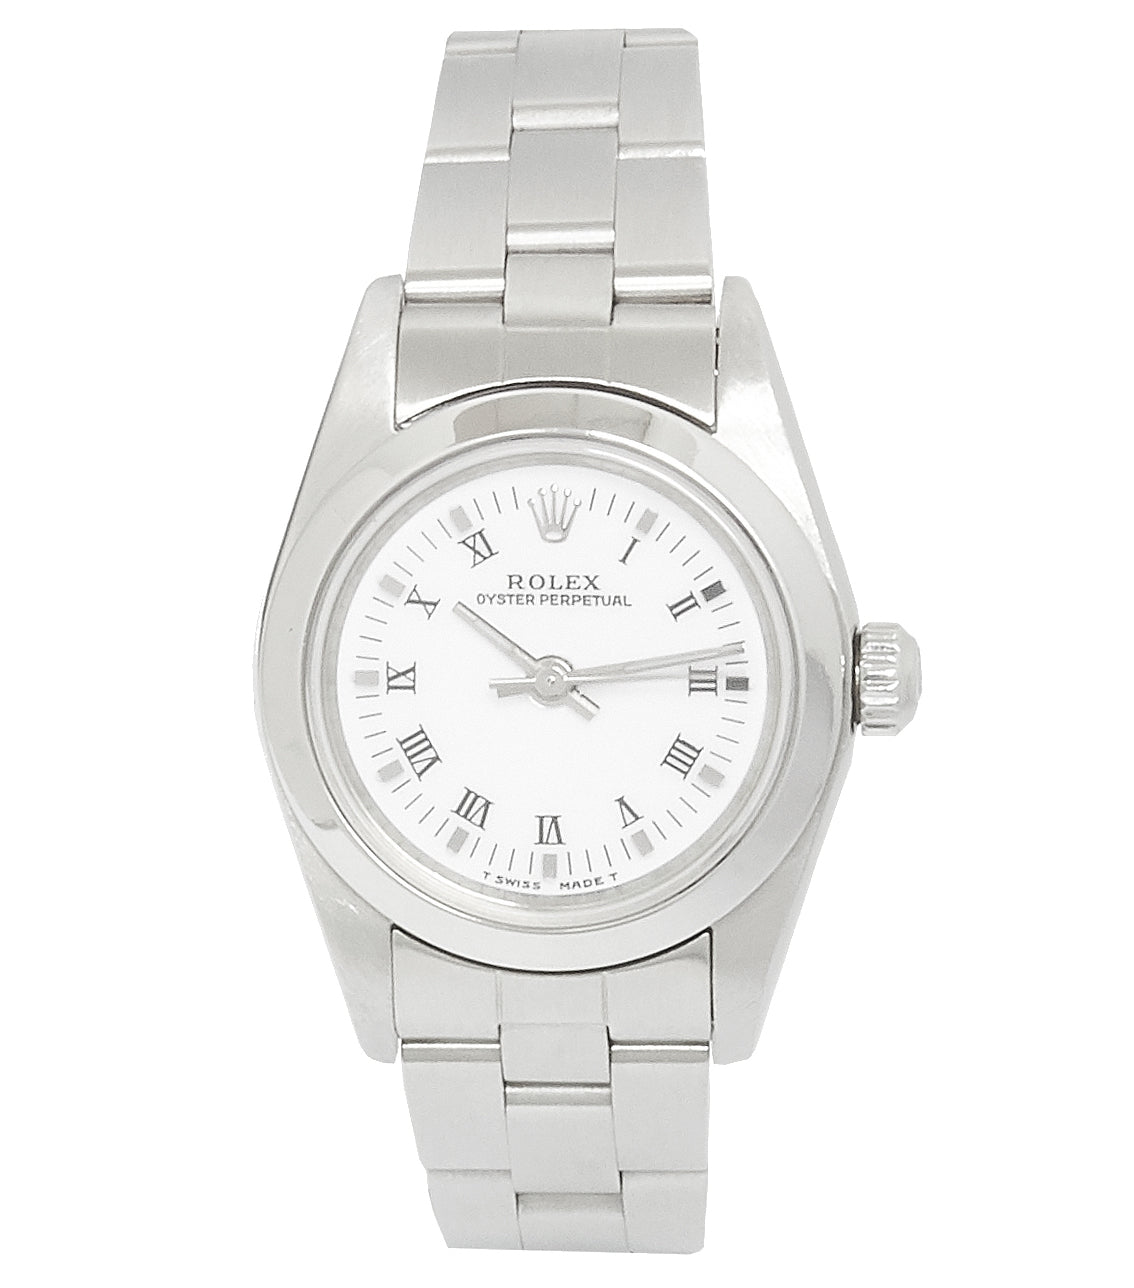 Rolex Oyster Perpetual Ladies No Date, White Dial. Ref: 76080 (1999)